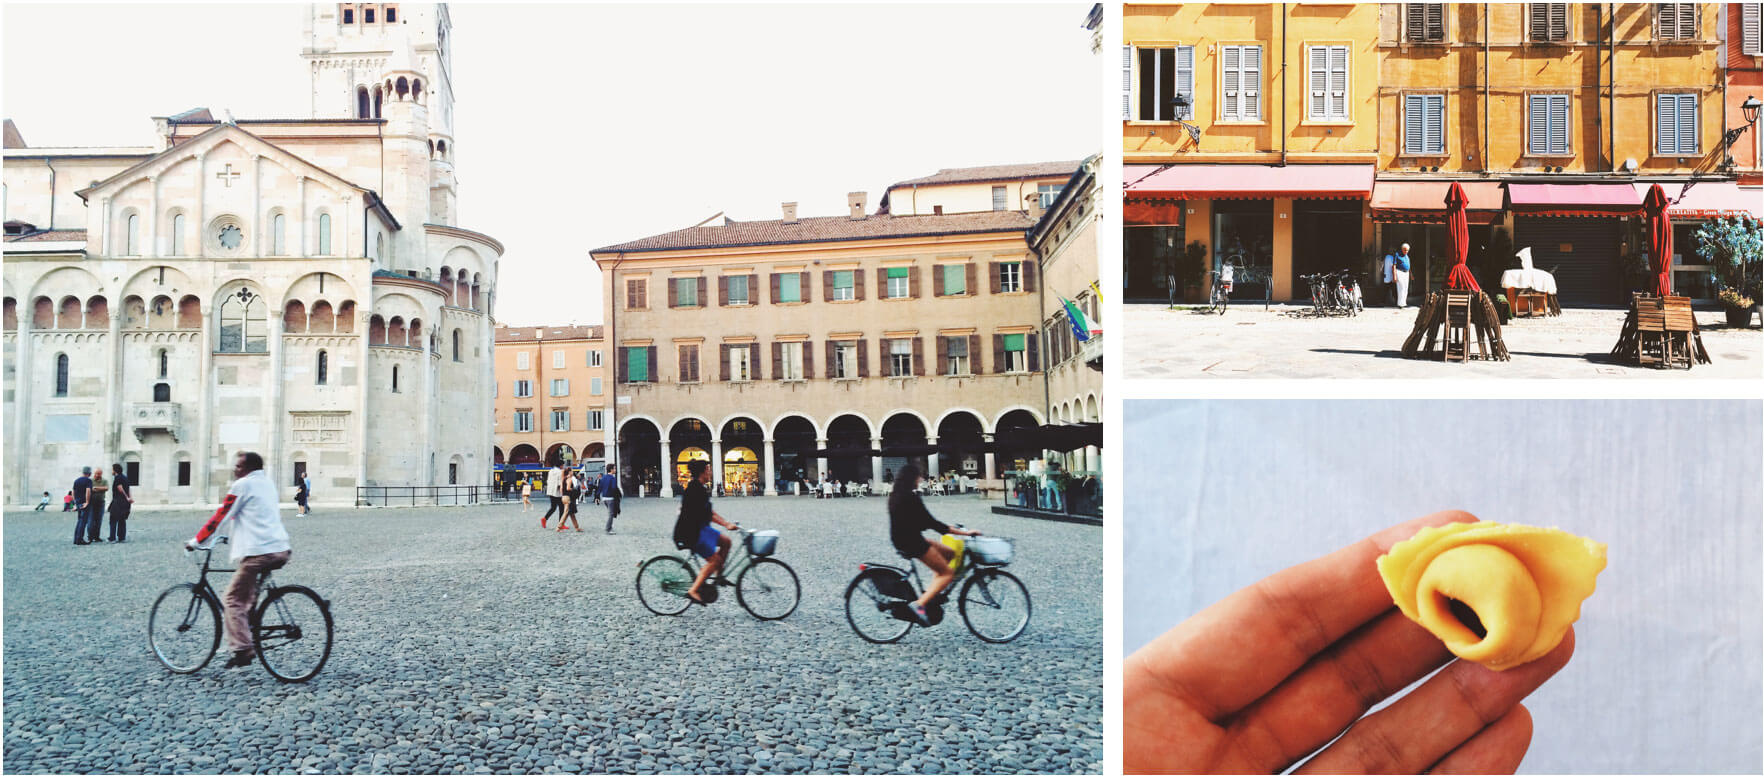 My Modena Diary's Experiences: Pasta Experience in Modena & City Tour